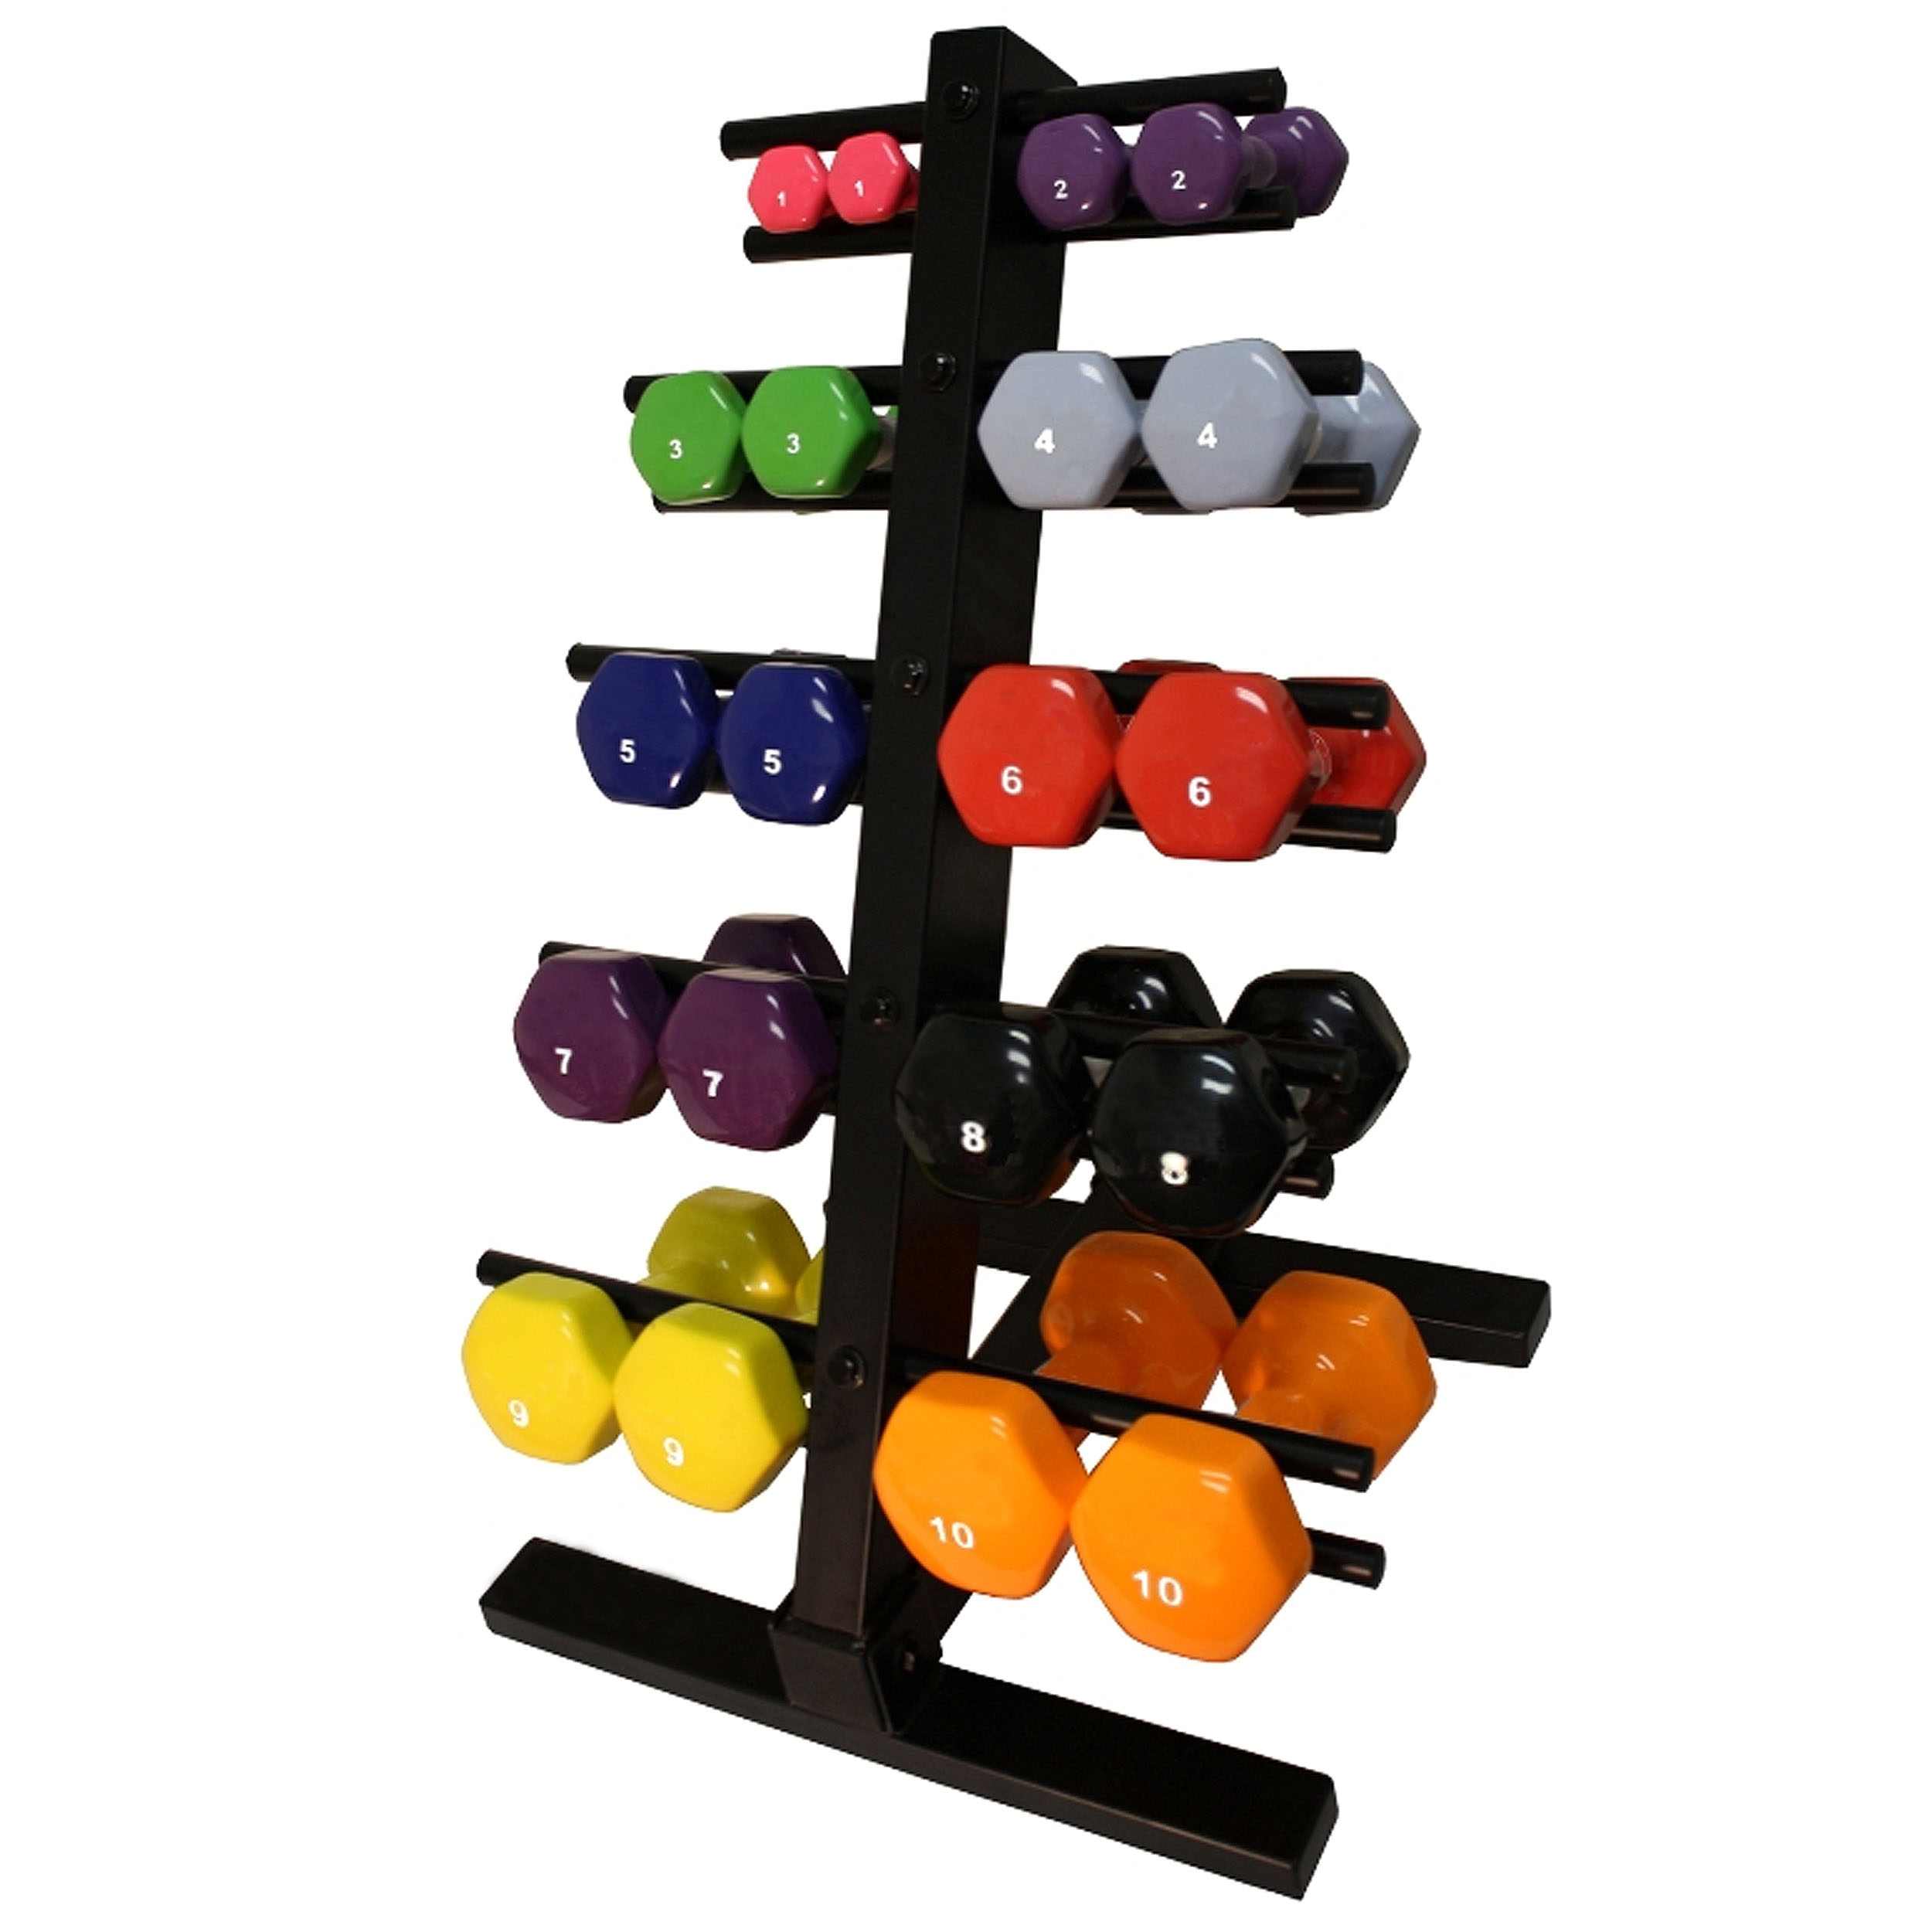 Harvil 10-Pair Vinyl Encased Dumbbell Set with 2-Sided Vertical Dumbbell Rack. Dumbbell Weights from 1 to 10 lbs.